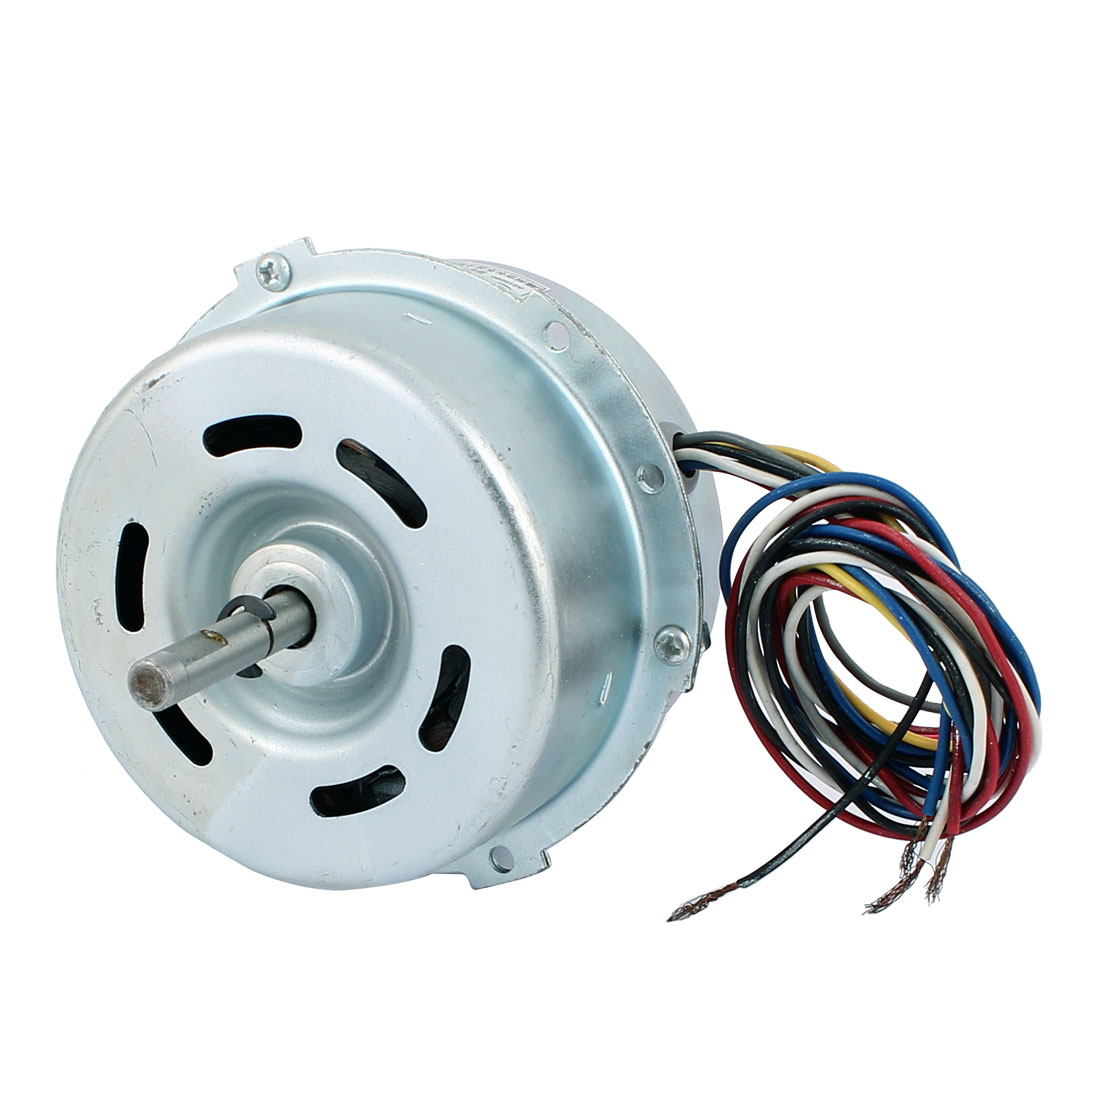 AC 220V 25W 1000RPM 8mmx40mm Shaft Dual Bearing Ball Electric Ventilator Fan Motor